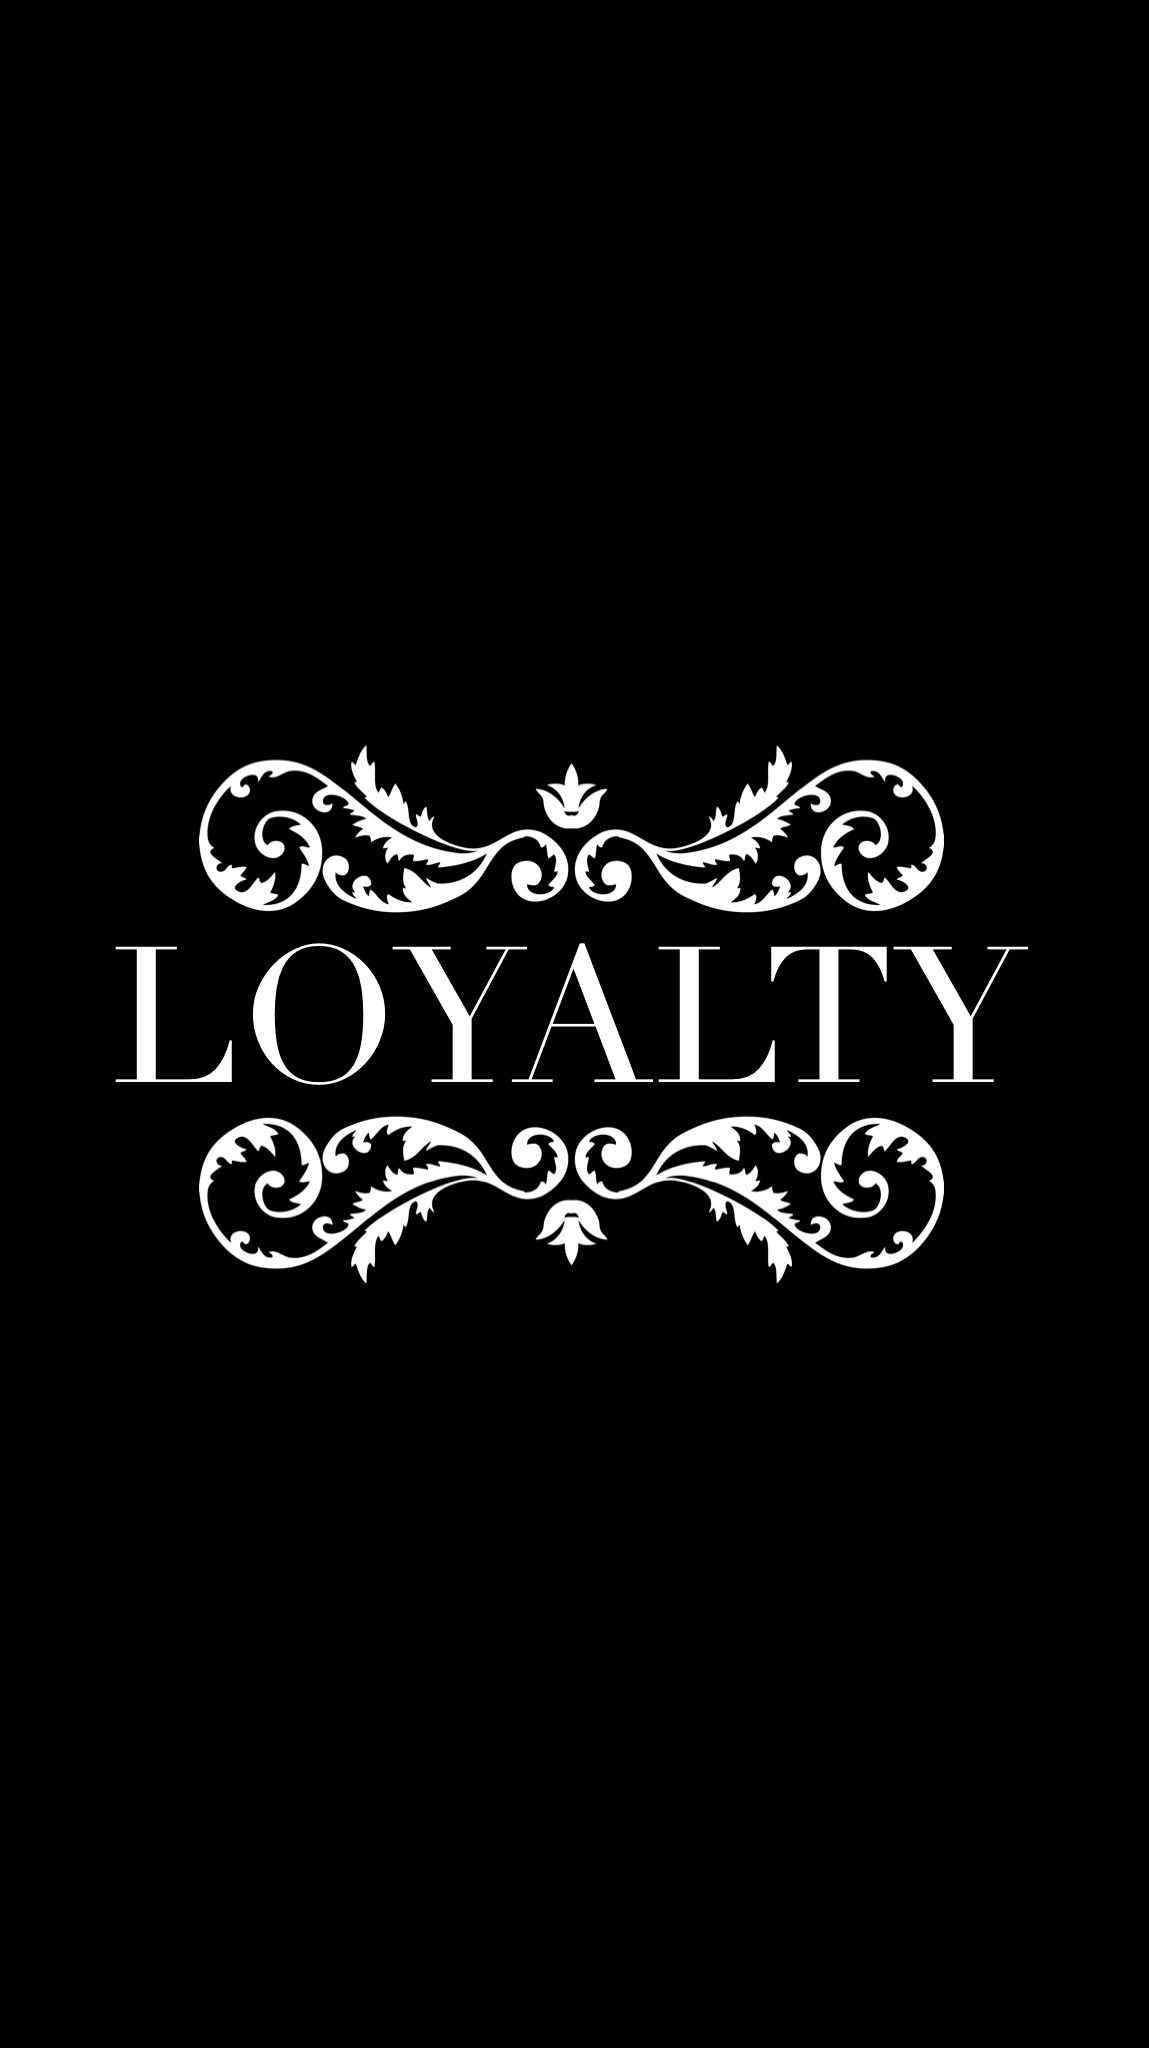 Loyalty Iphone Mobile Wallpaper Victorian Edit Iphone Wallpaper Black Wallpaper Wallpaper Quotes